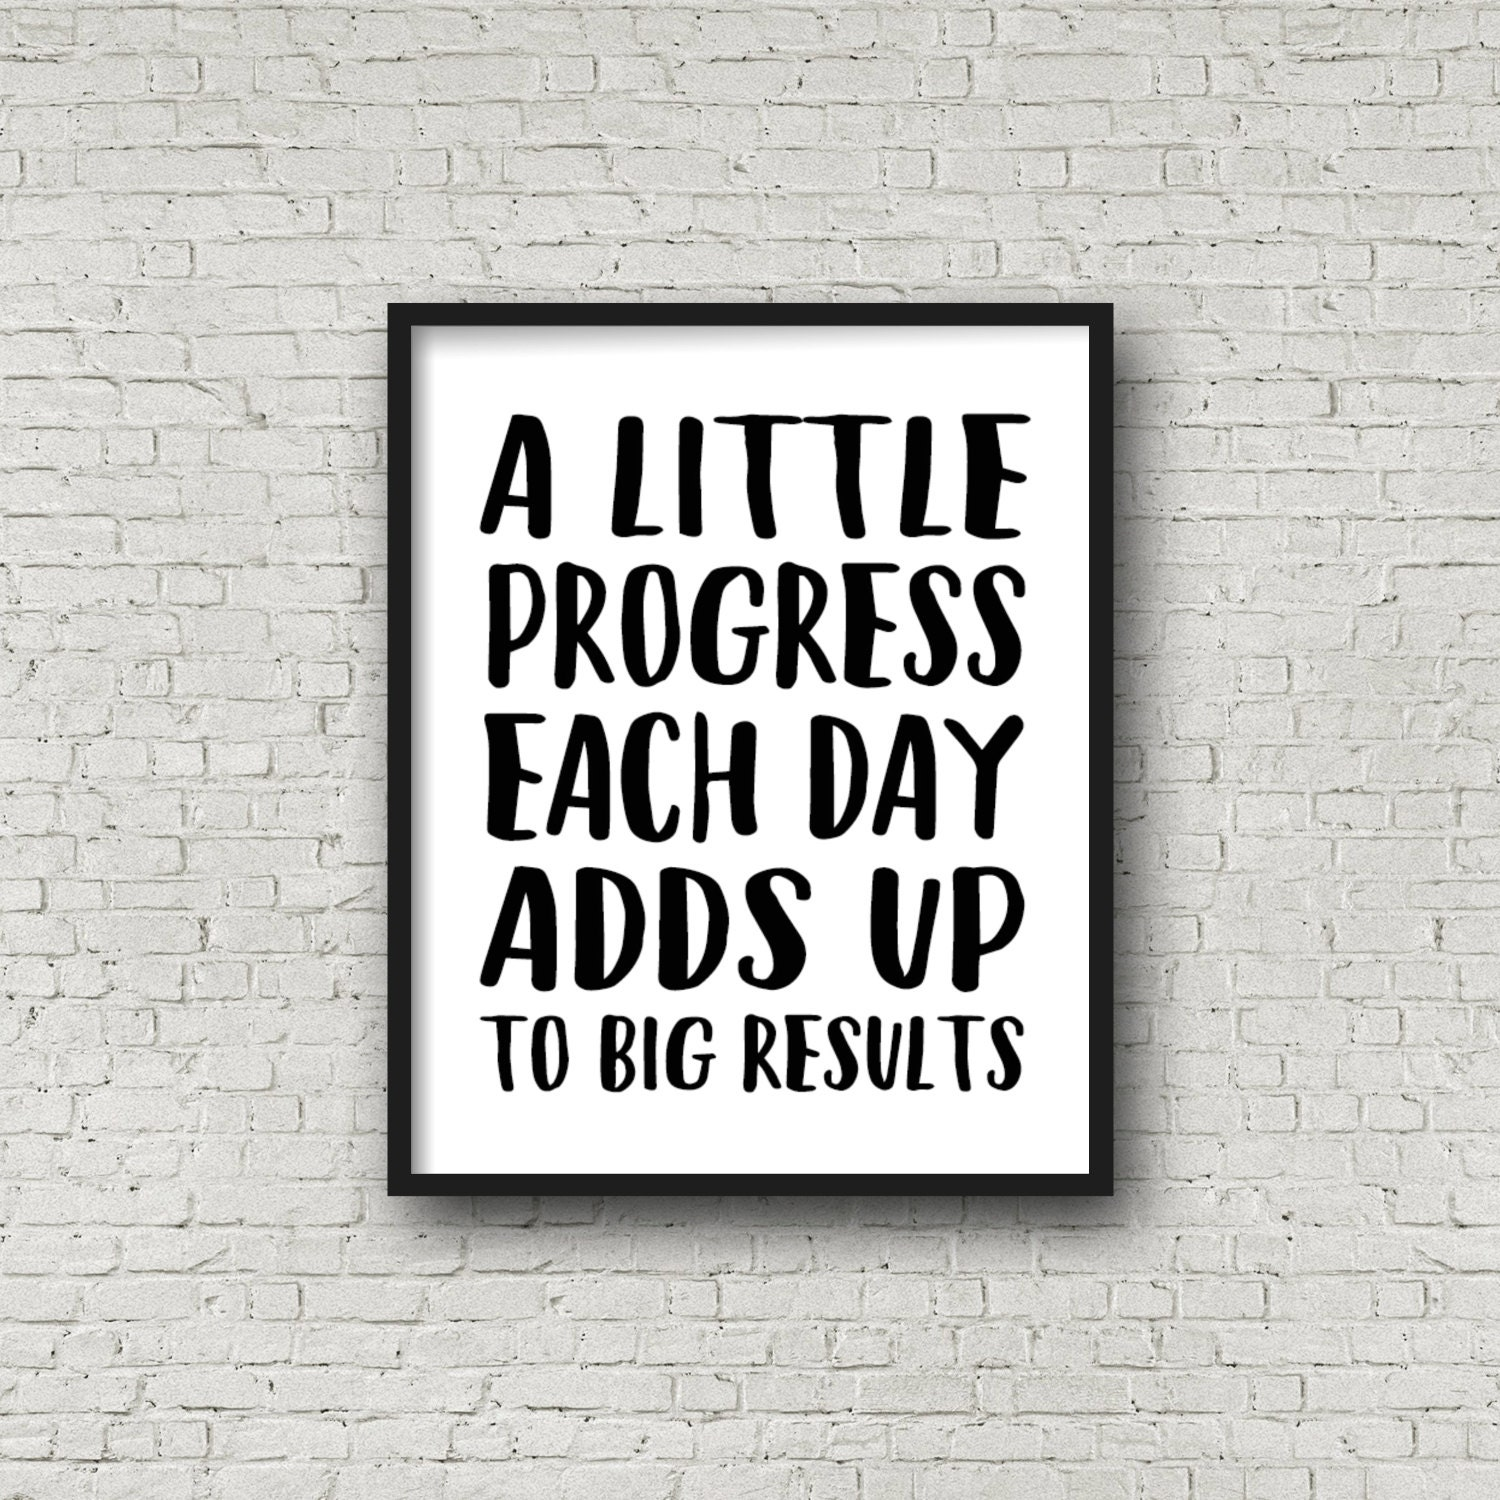 Inspirational Day Quotes: A Little Progress Each Day Adds Up To Big Results 5x7 8x10